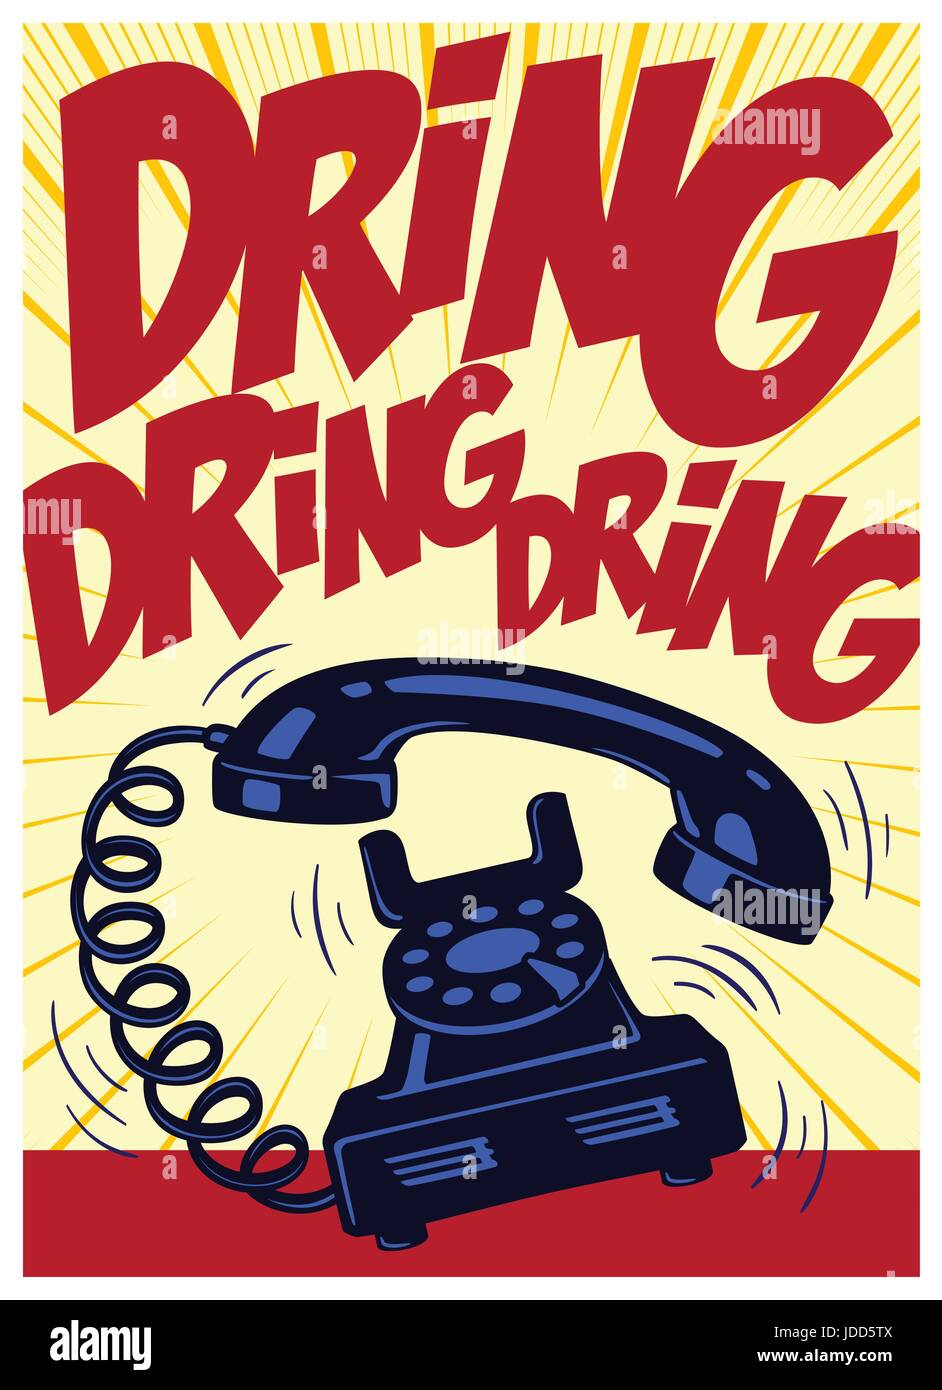 Retro phone ringing loudly vintage pop art comic book style vector ...